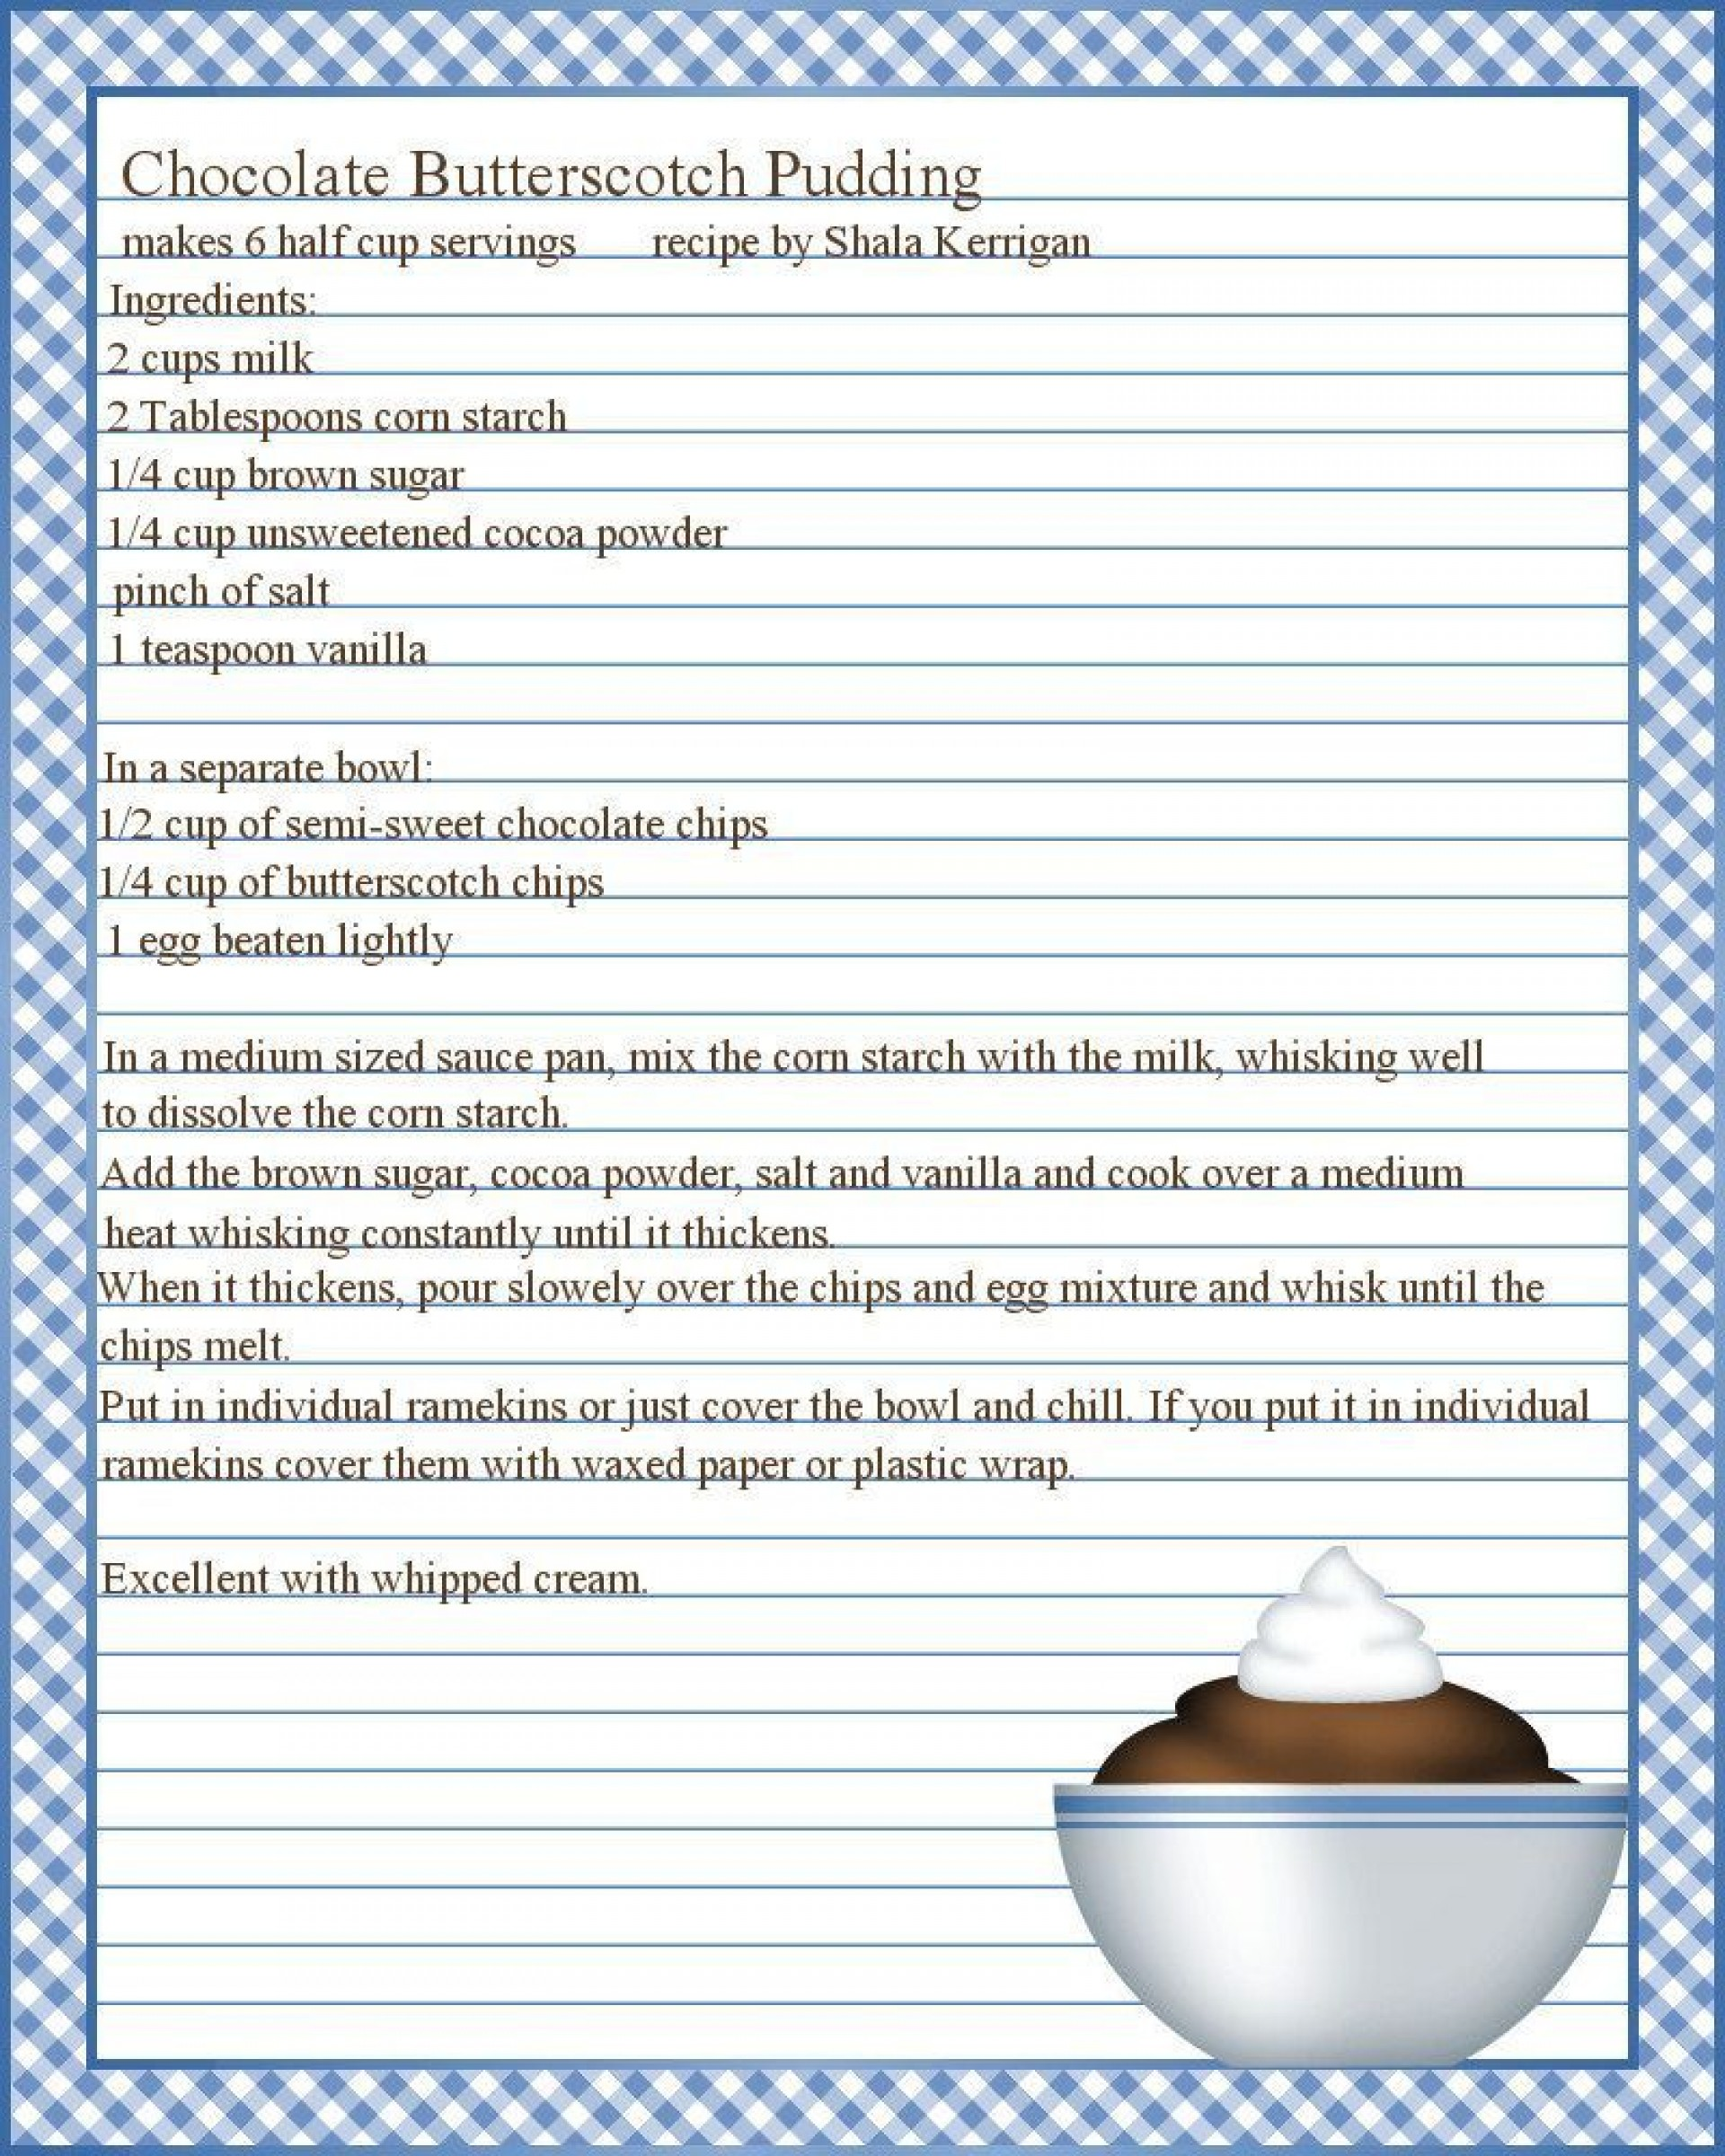 004 Staggering Full Page Recipe Template Editable Example  For Word Free1920